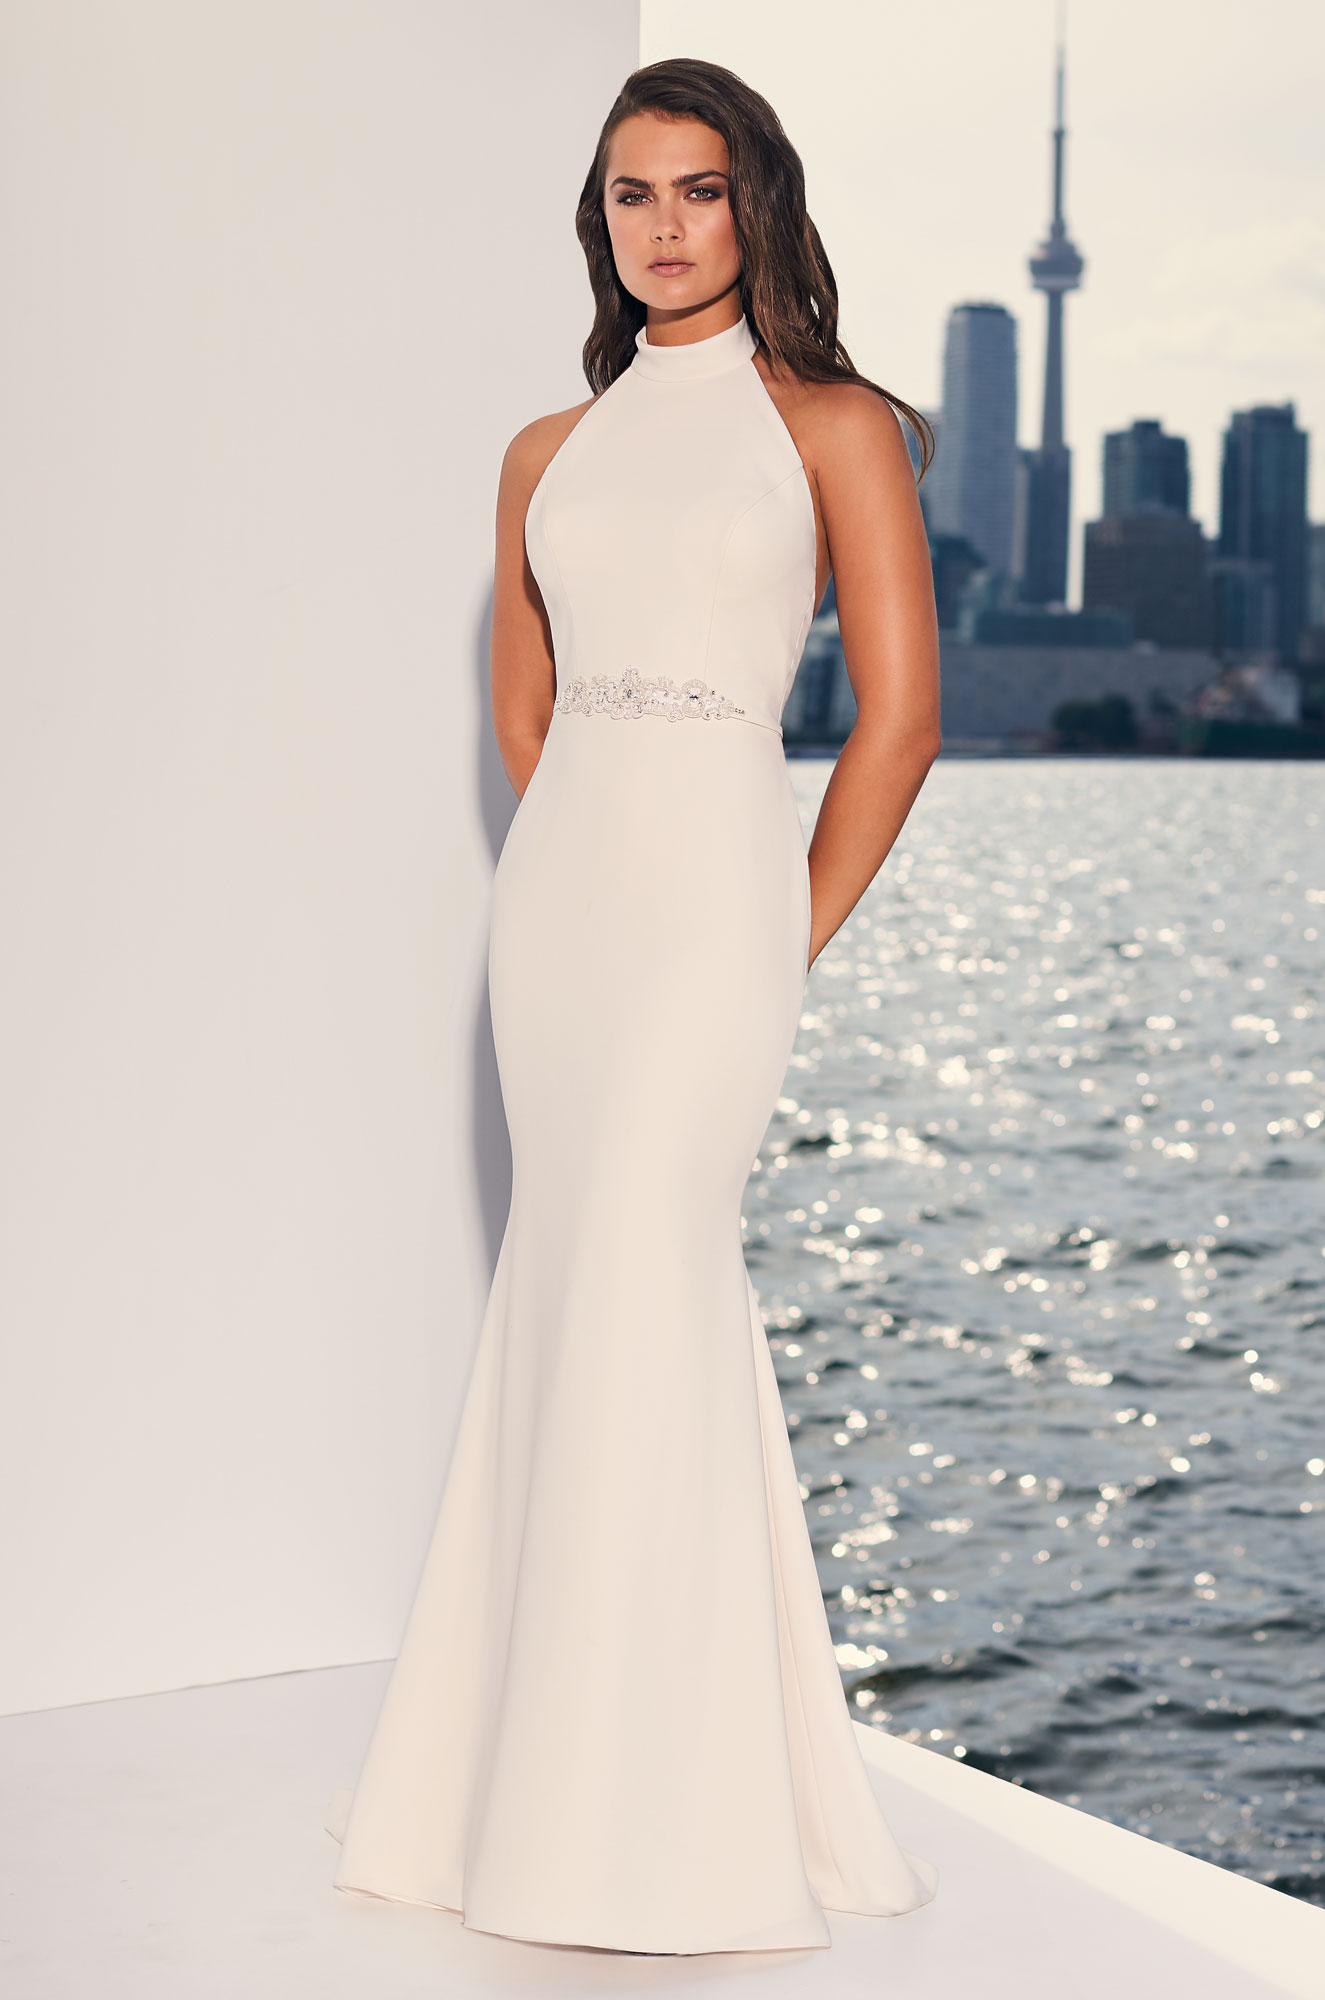 Halter Top Crepe Open Back Fit And Flare Wedding Dress ...Halter Top Backless Wedding Dresses